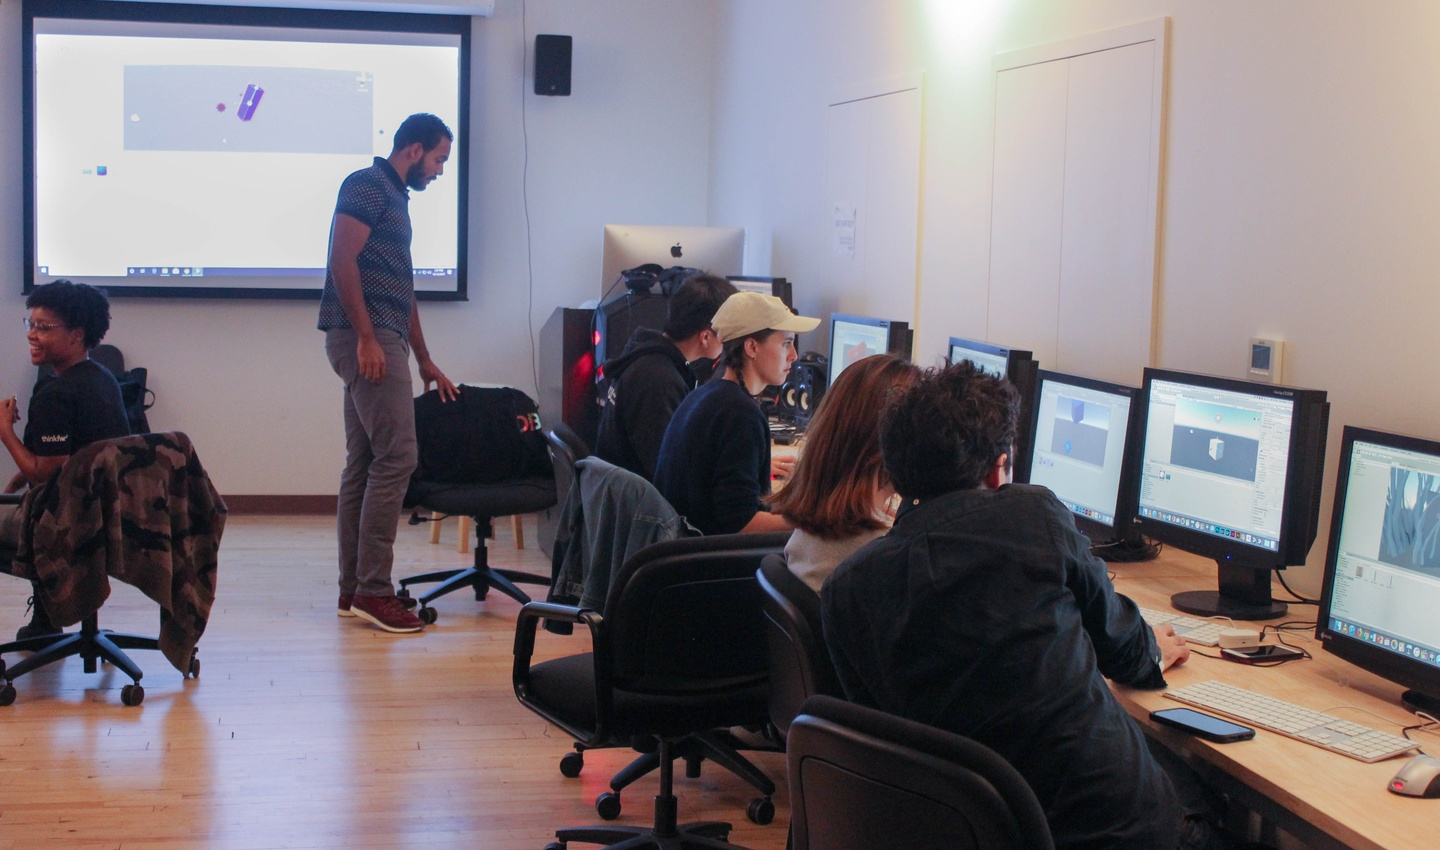 Students work in computer lab